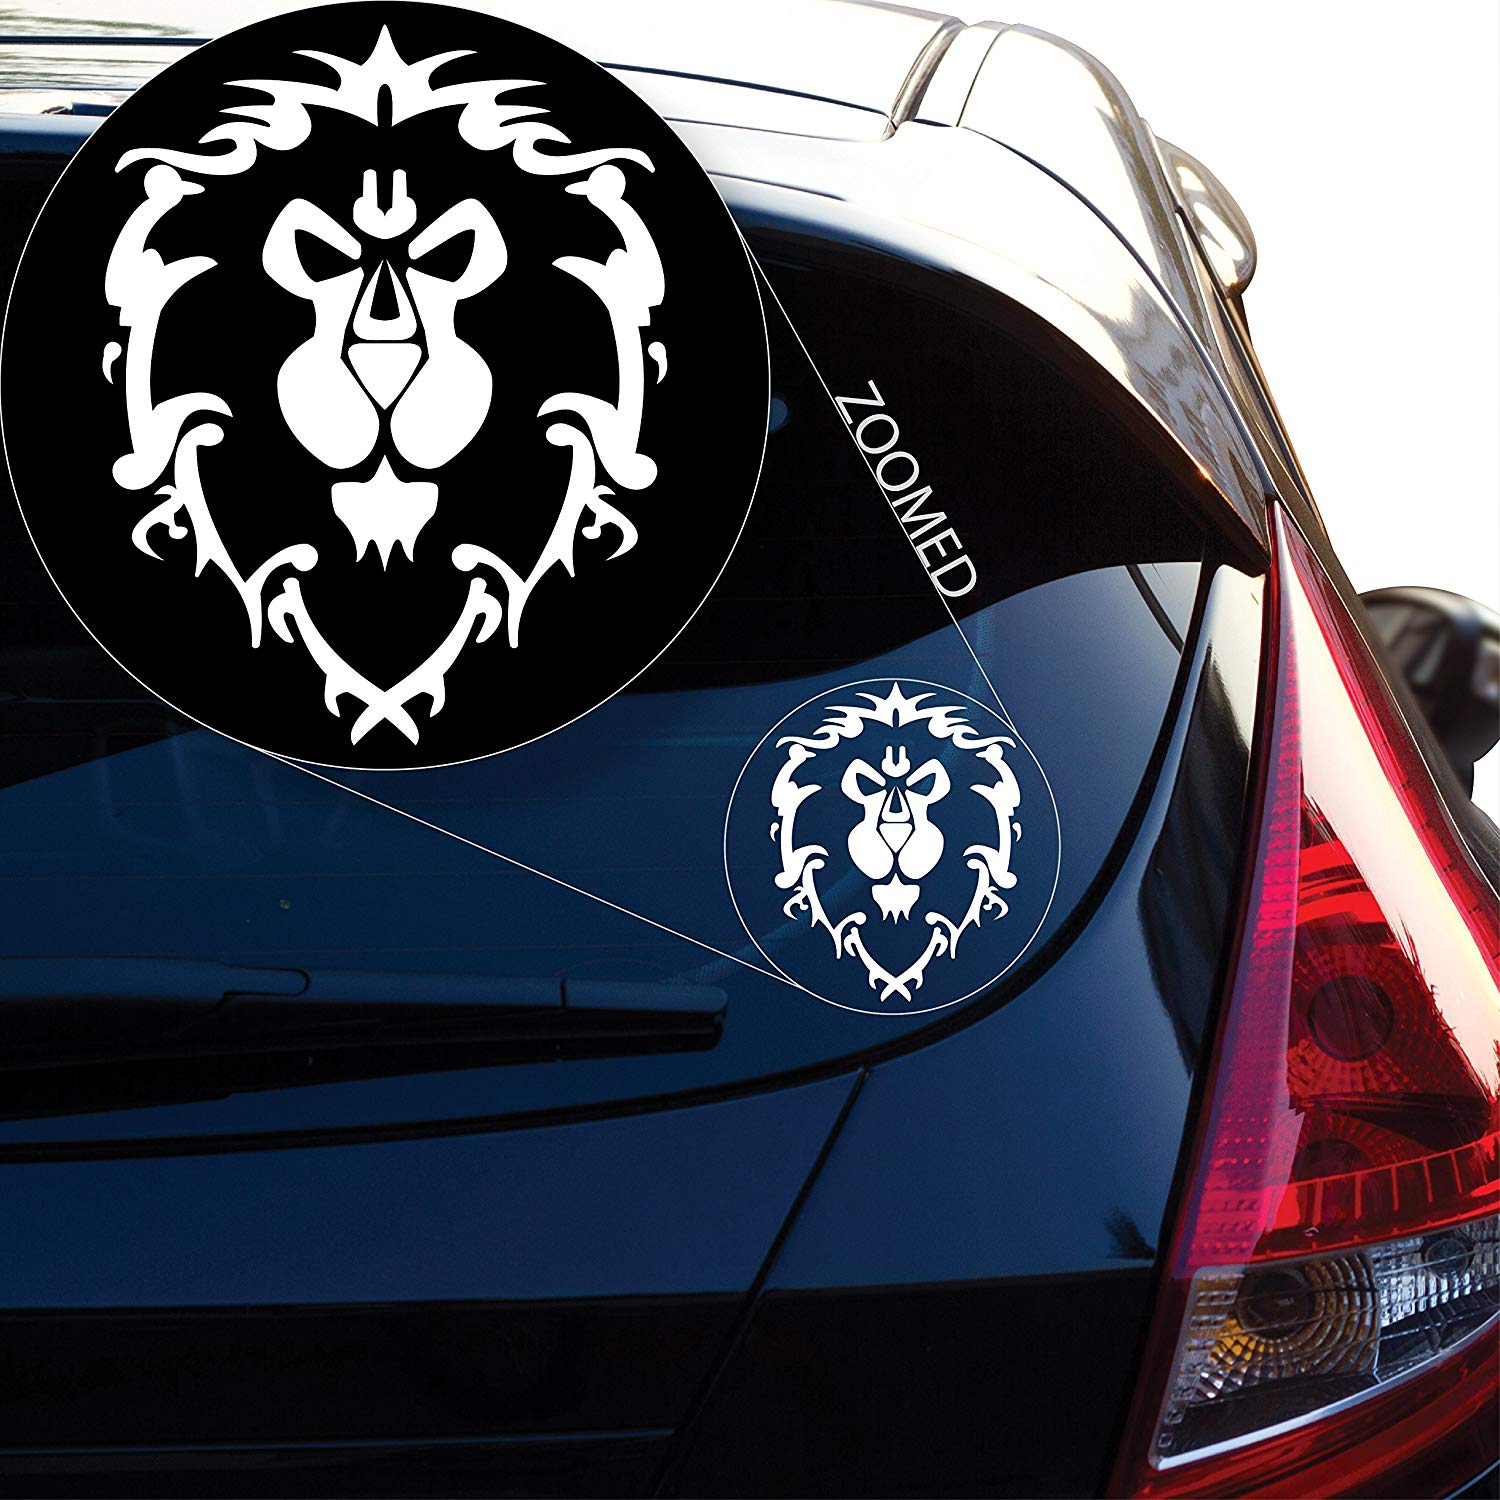 Graphics World of Warcraft Alliance Decal Sticker for Car Window, Laptop and More